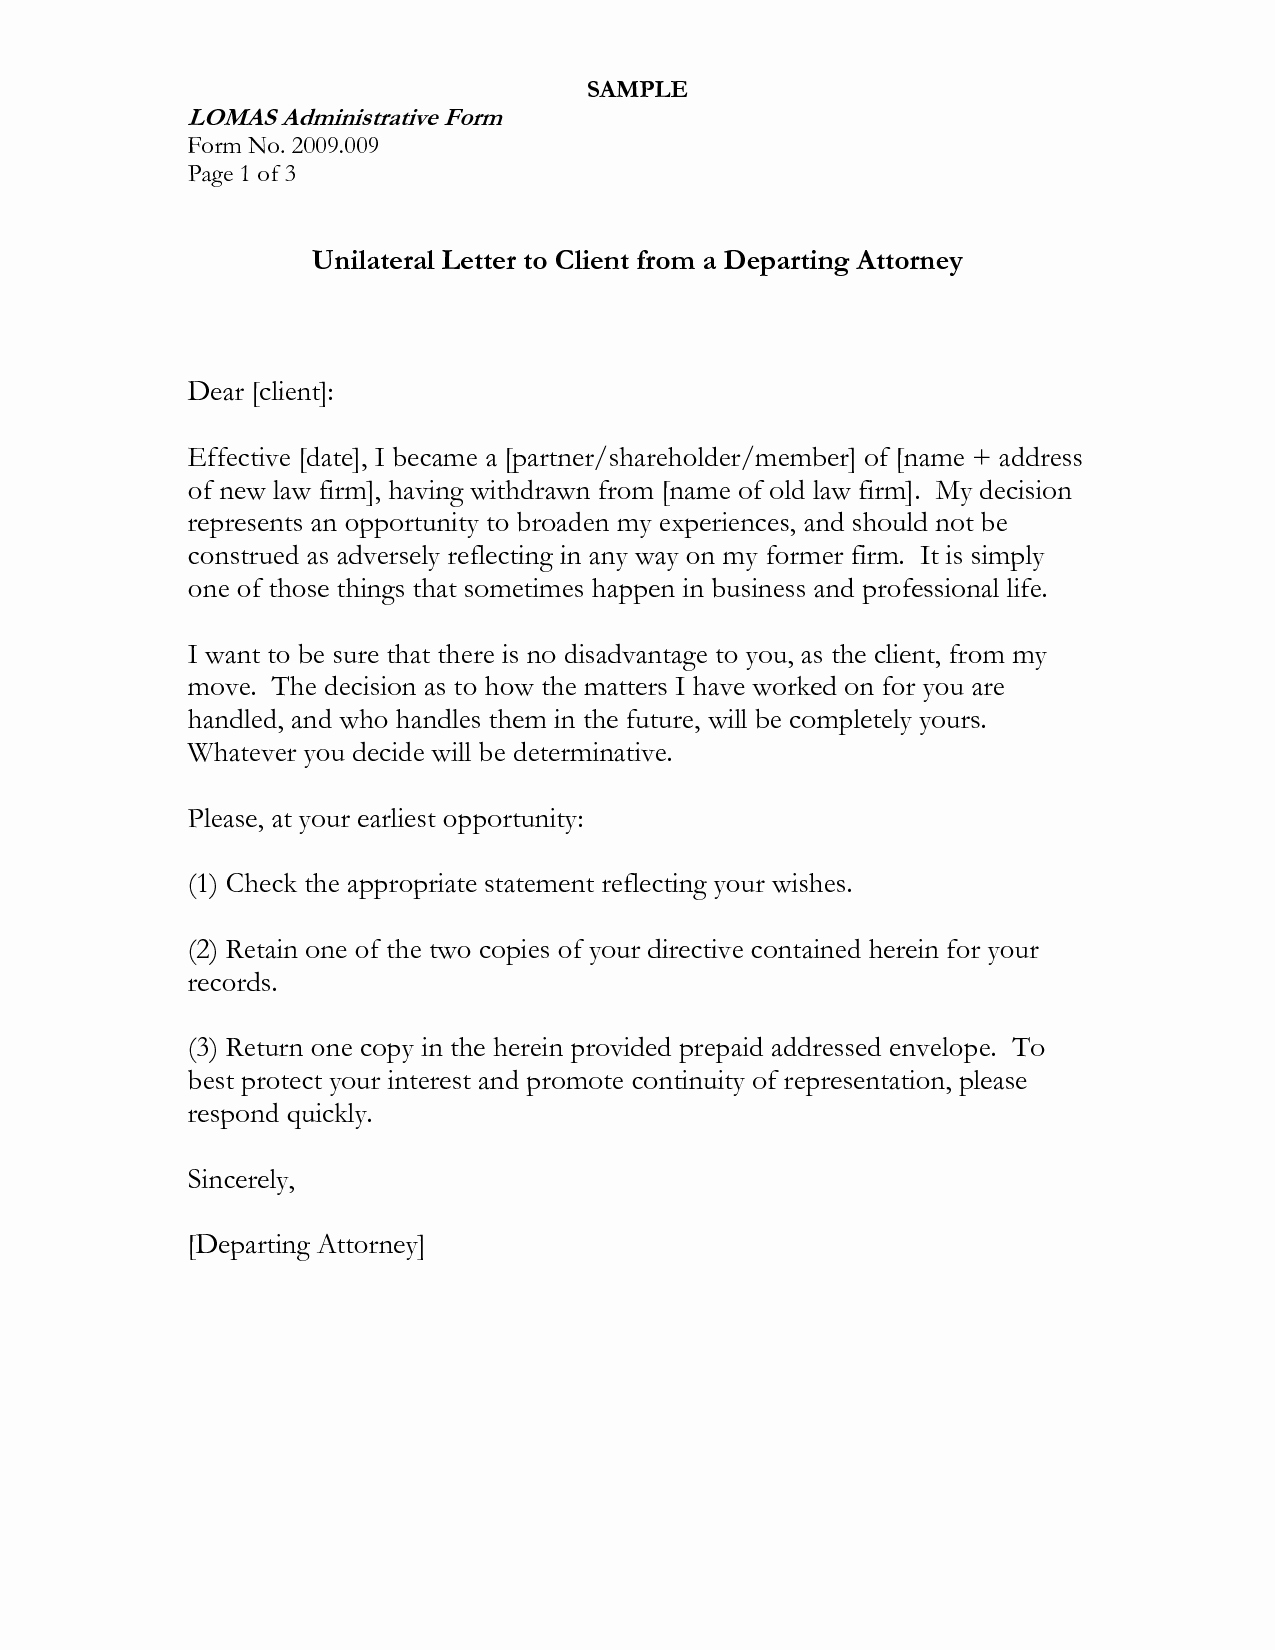 Attorney Client Letter Template Elegant Best S Of Sample Client Letter From attorney Lawyer